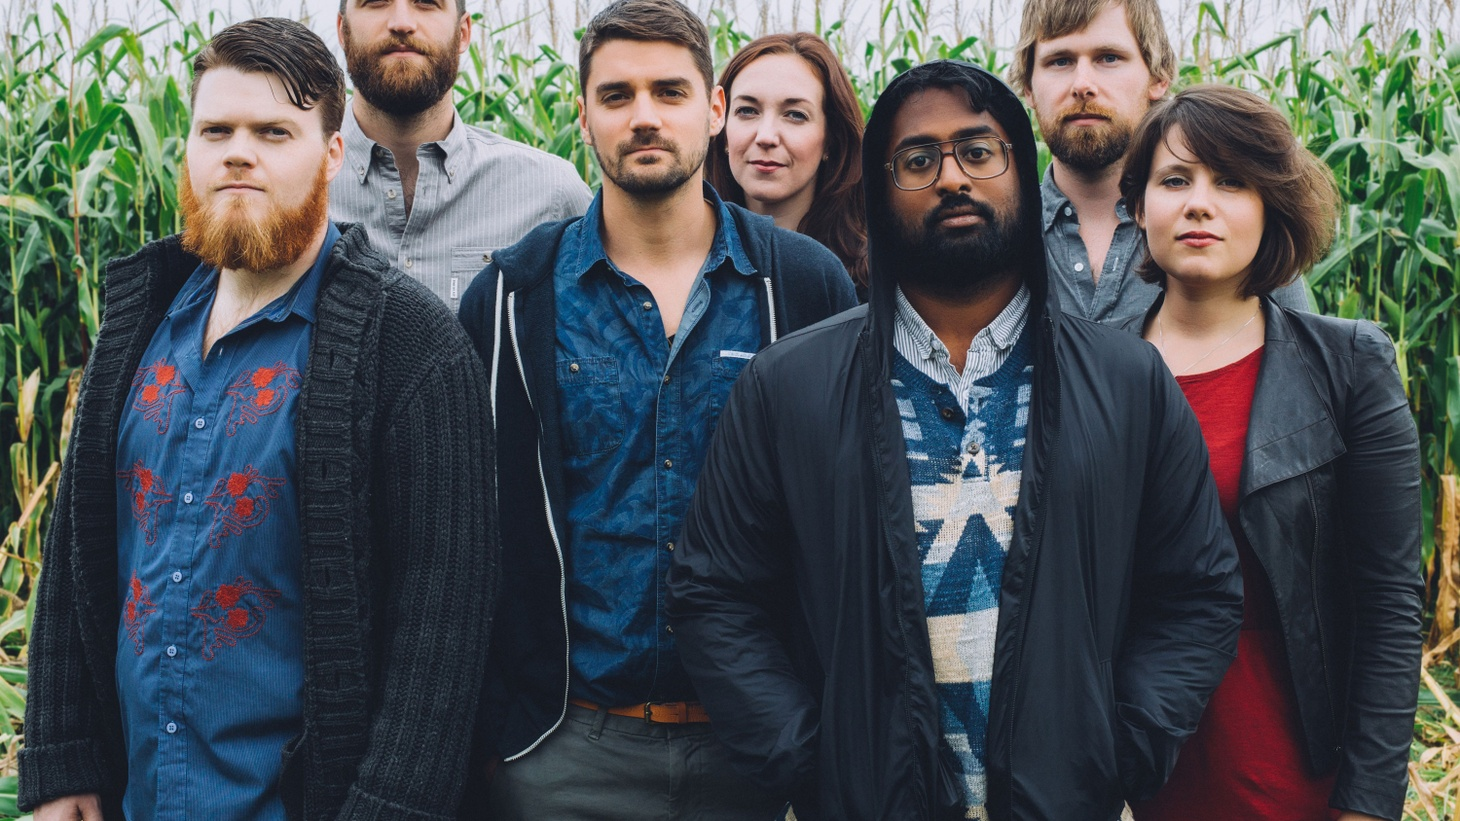 Canadian indie rockers Hey Rosetta! will release Second Sight, their fourth studio album in the US later this month.